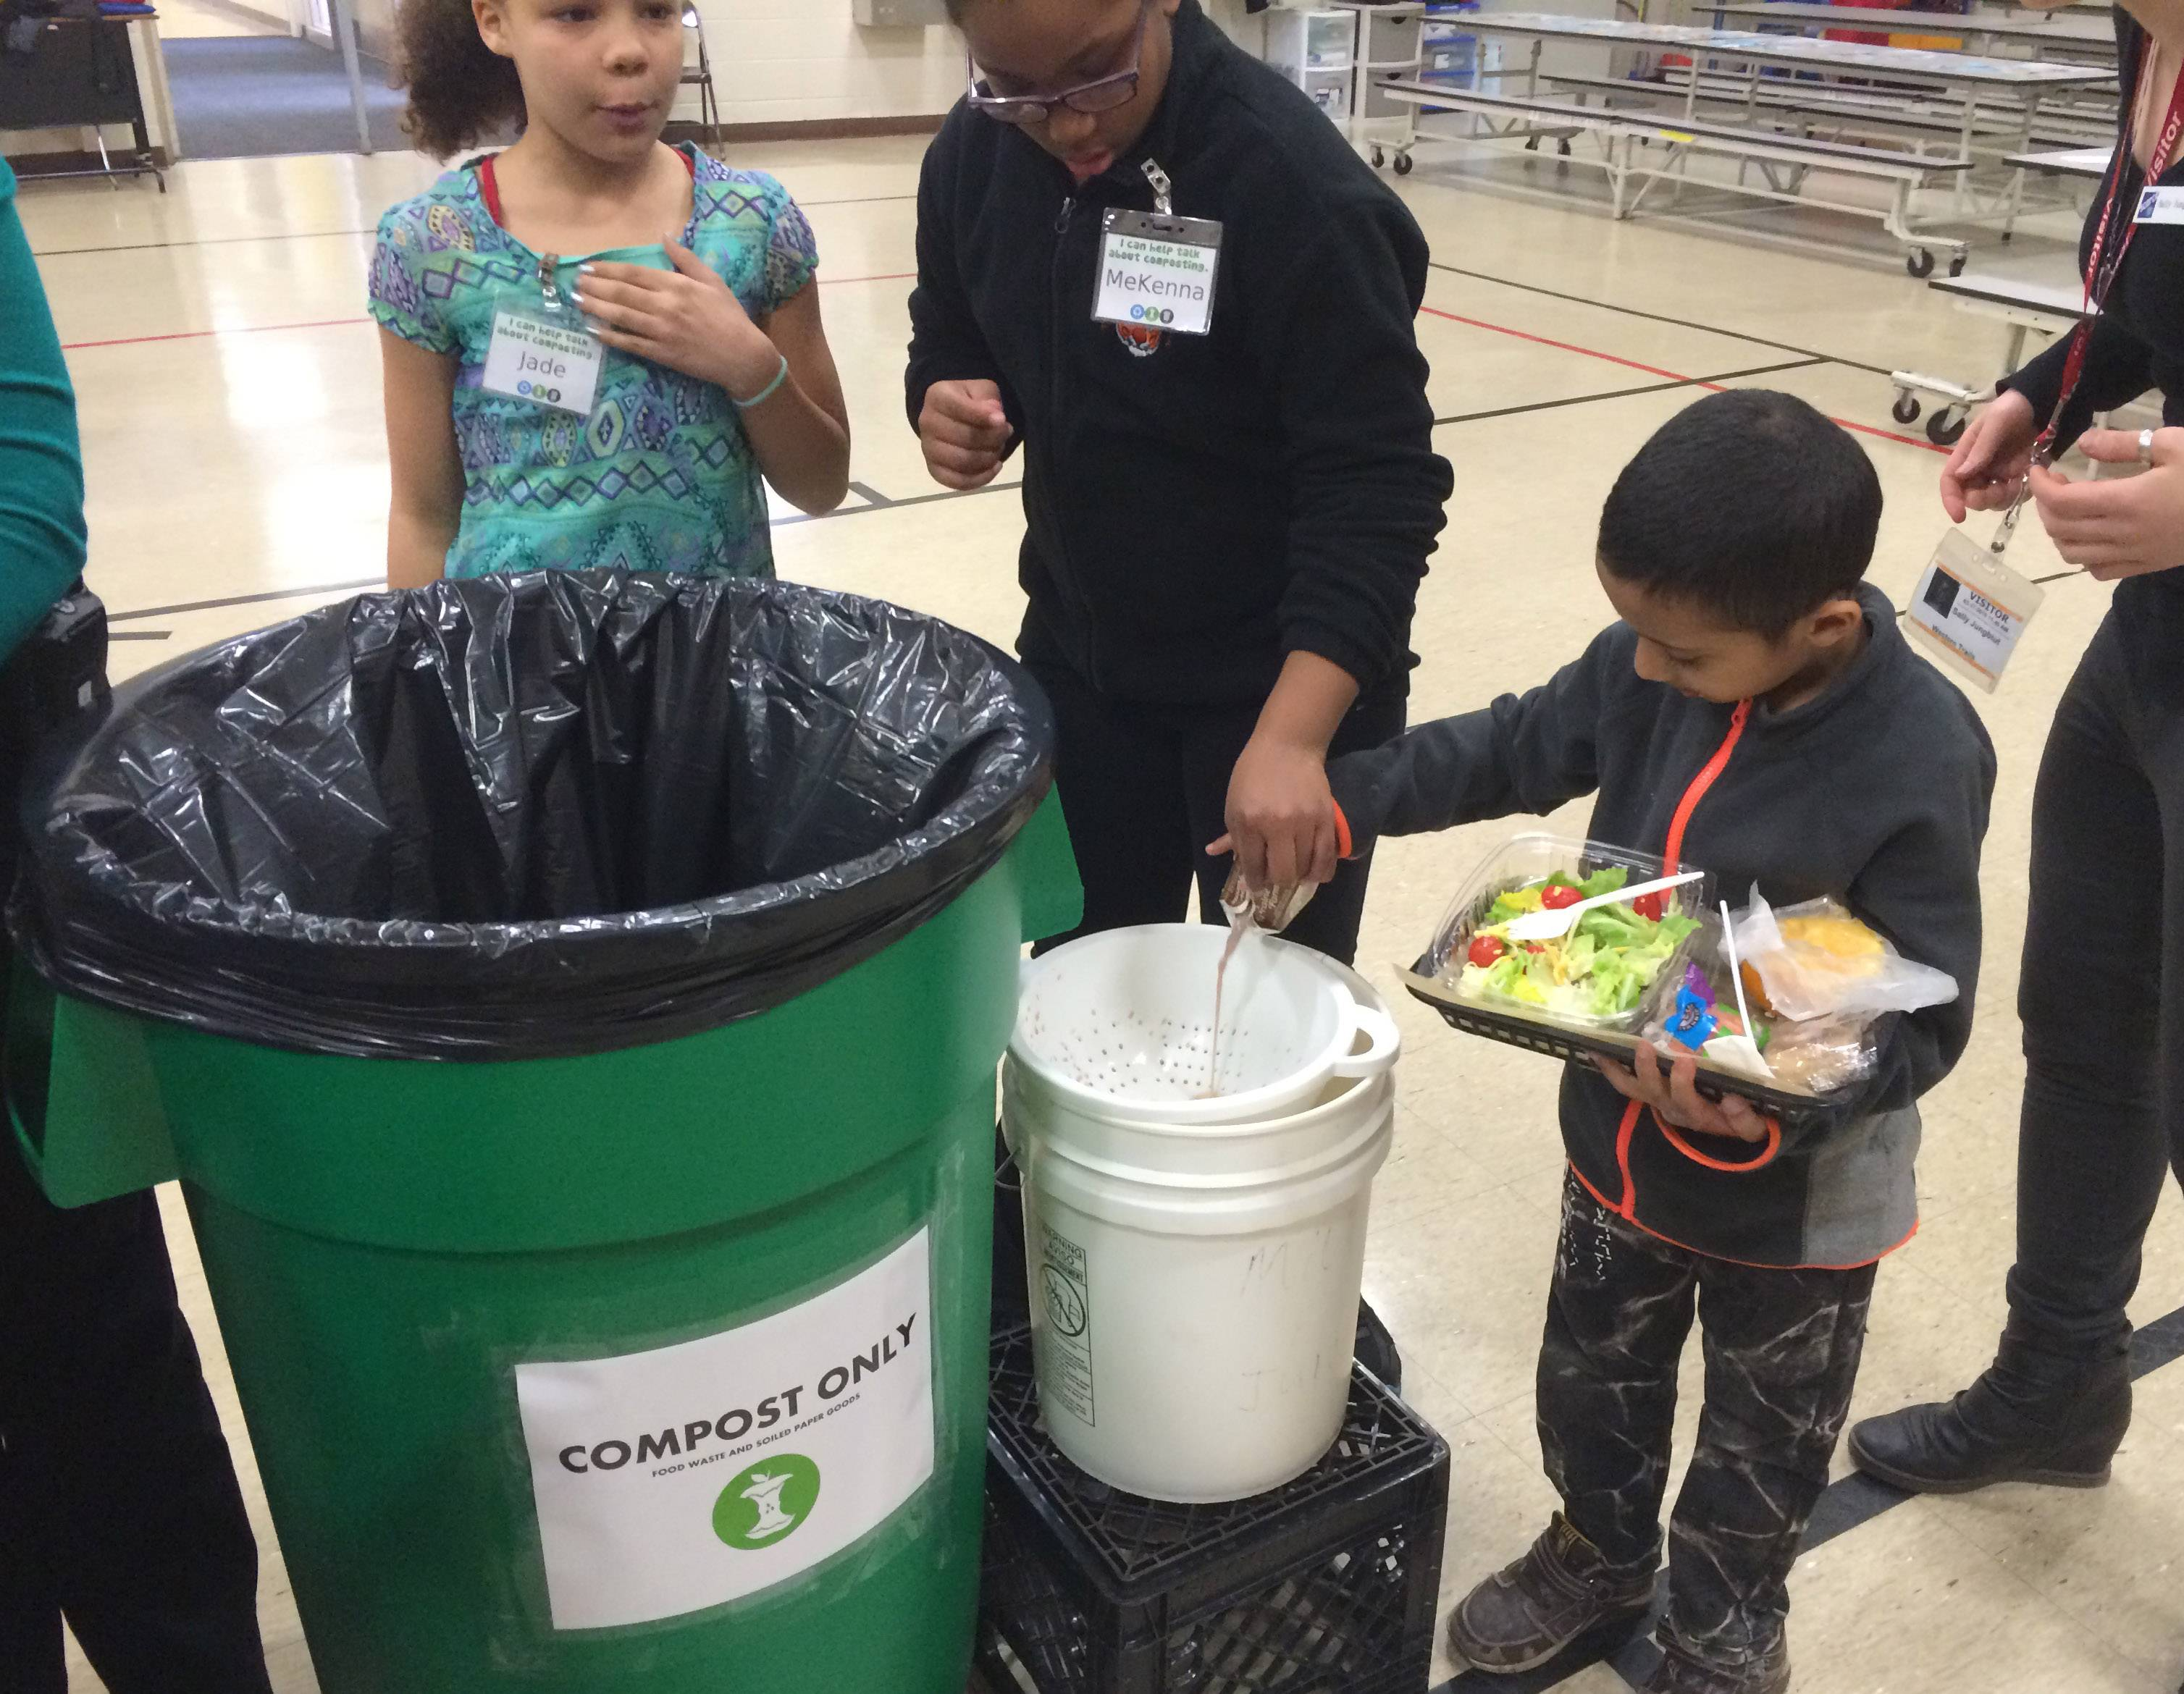 Students use food composting bins at Western Trails Elementary School in Carol Stream Elementary District 93.